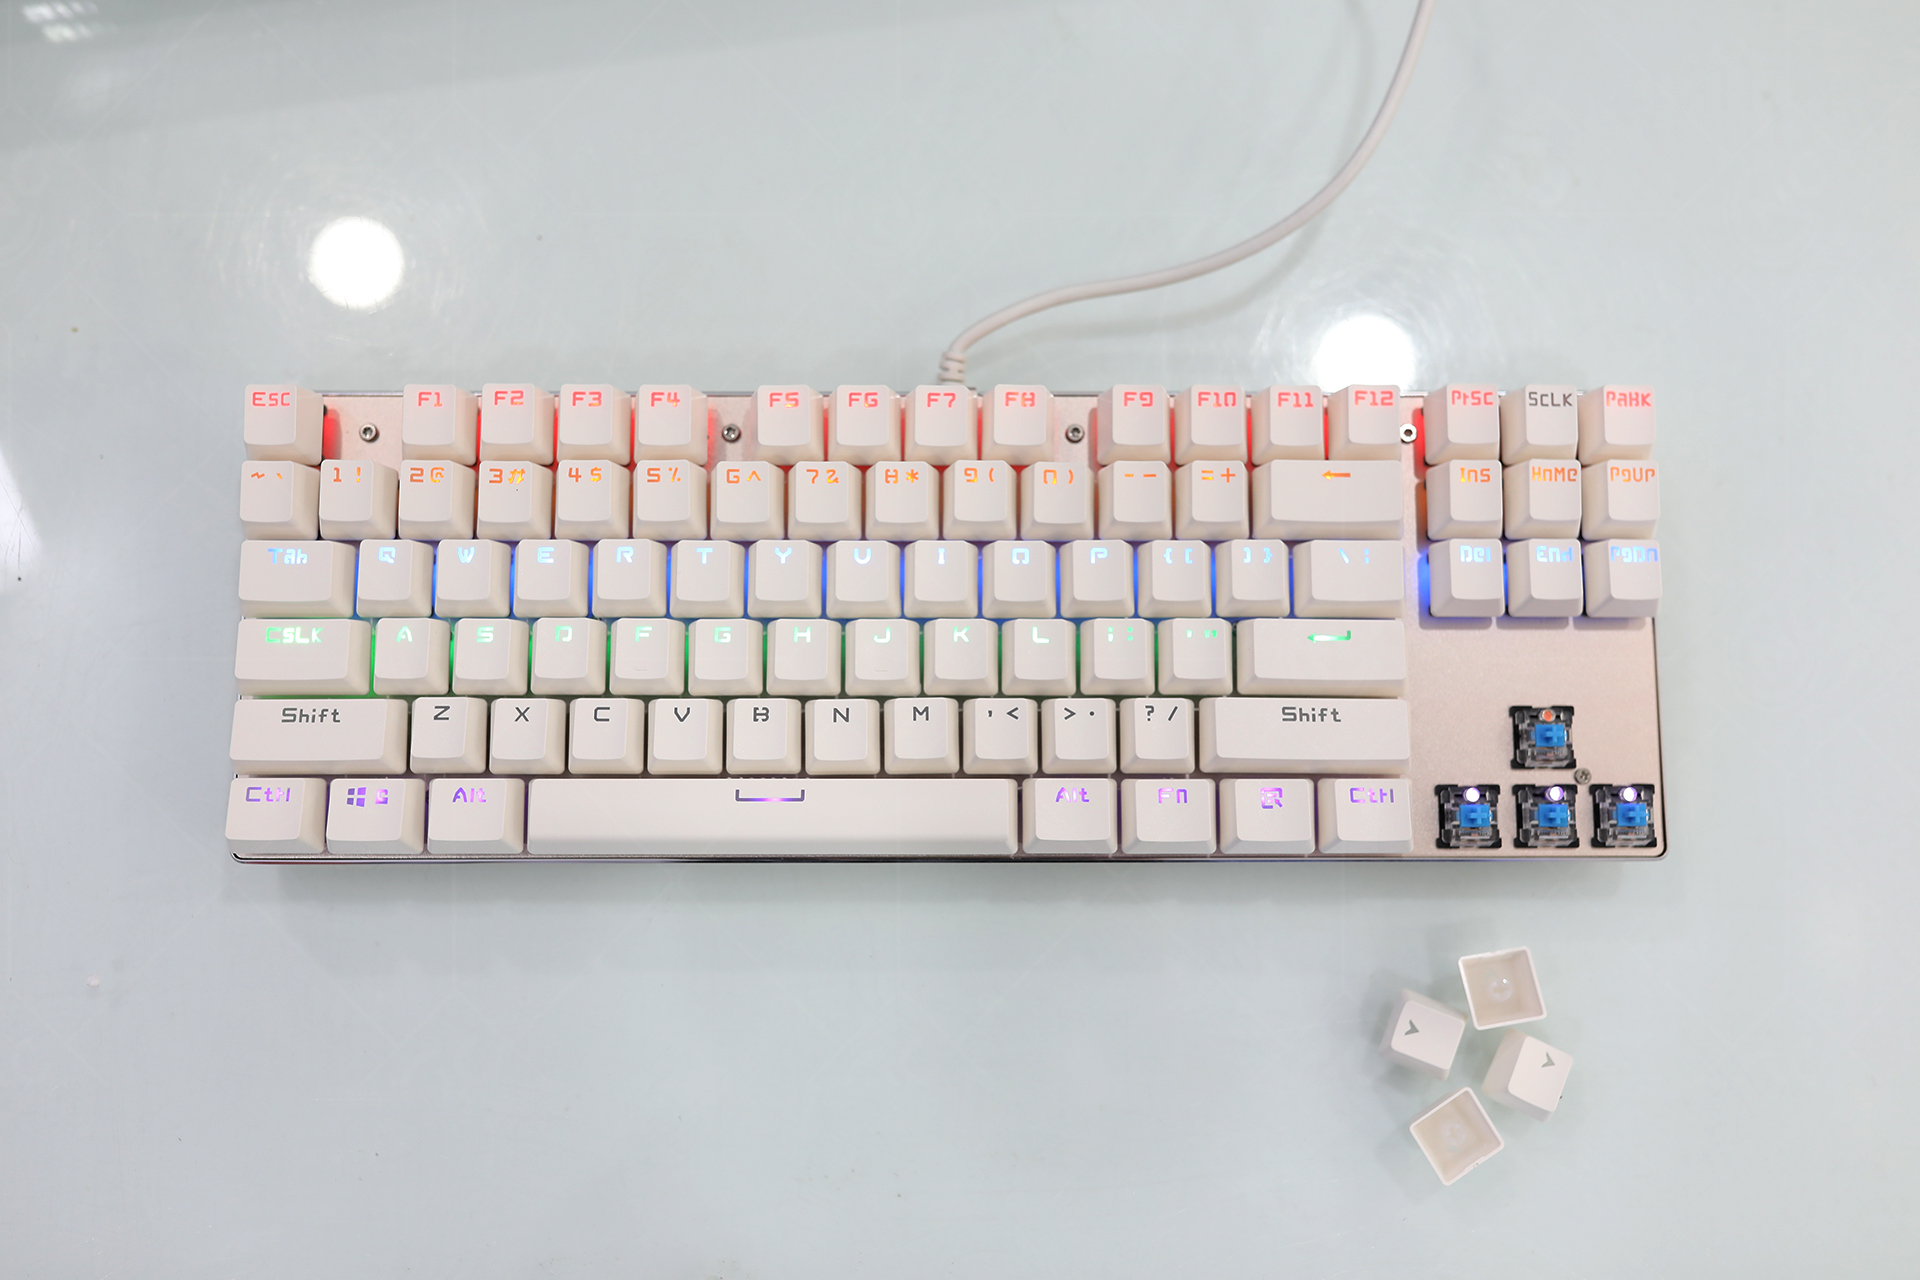 ban-phim-co-motospeed-k87-tkl-led-backlight-6